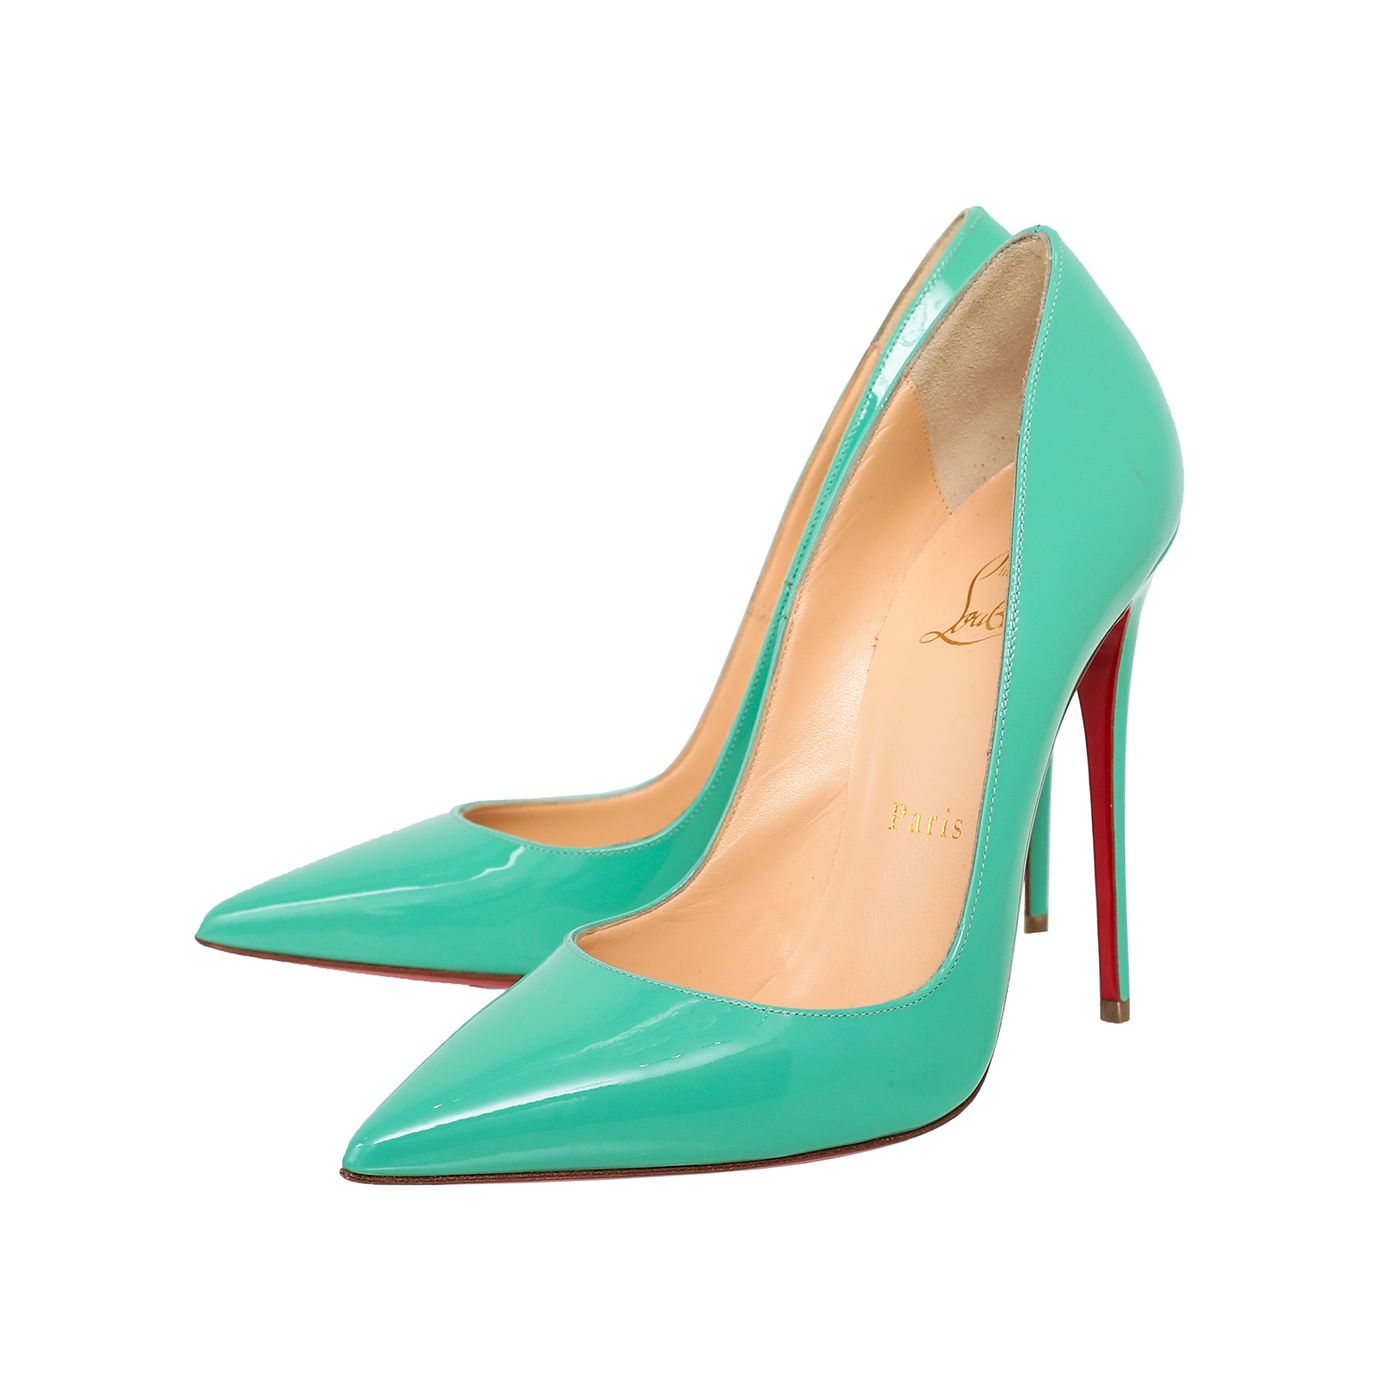 Christian Louboutin Mint Green Pigalle Follies 100mm Pumps 37.5